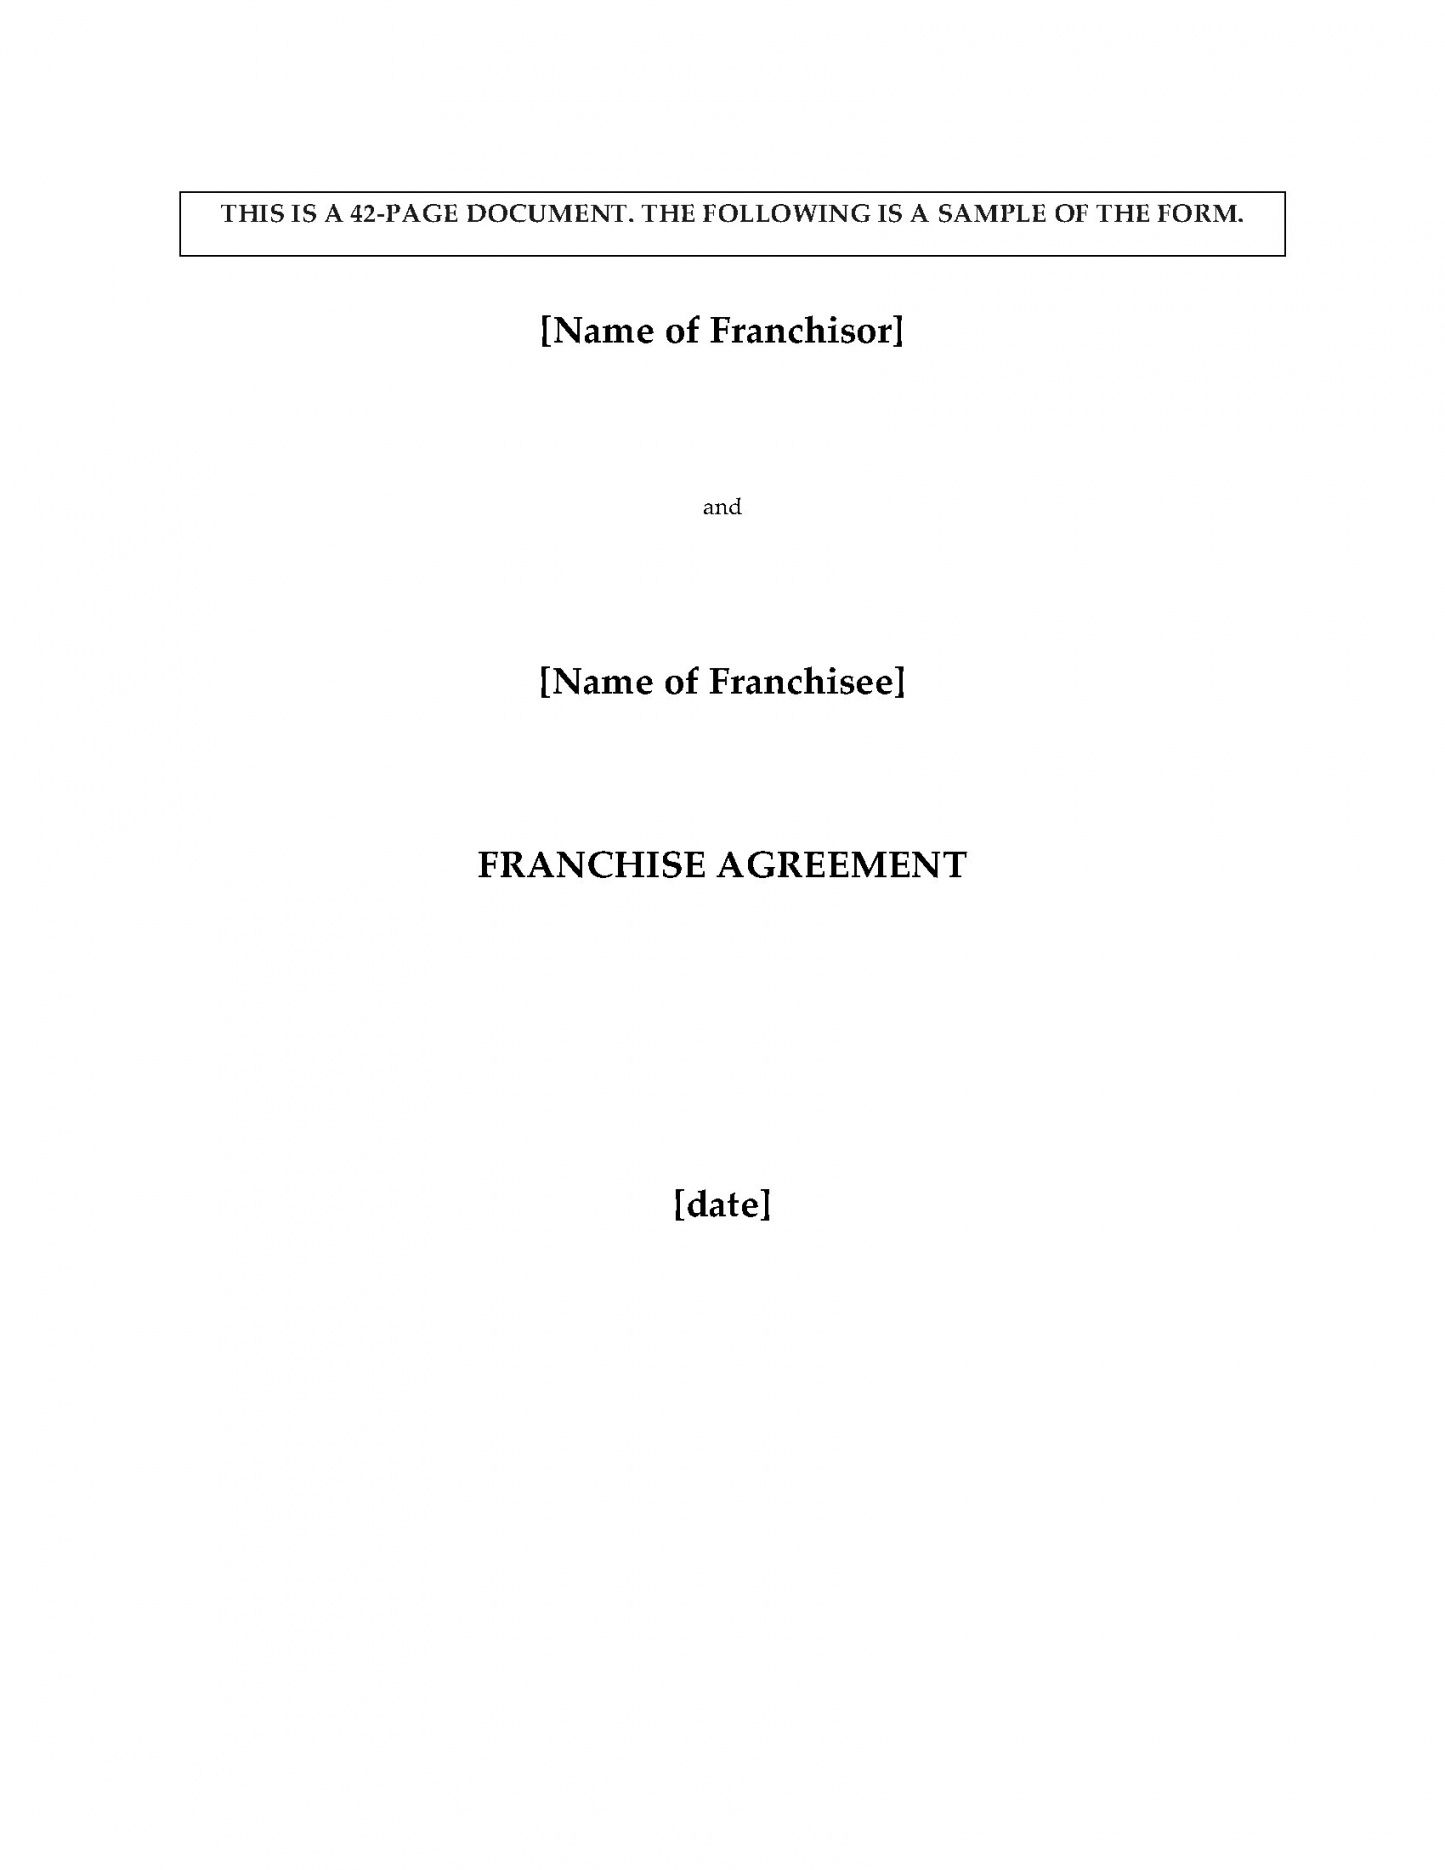 this is the canada franchise agreement for pizza